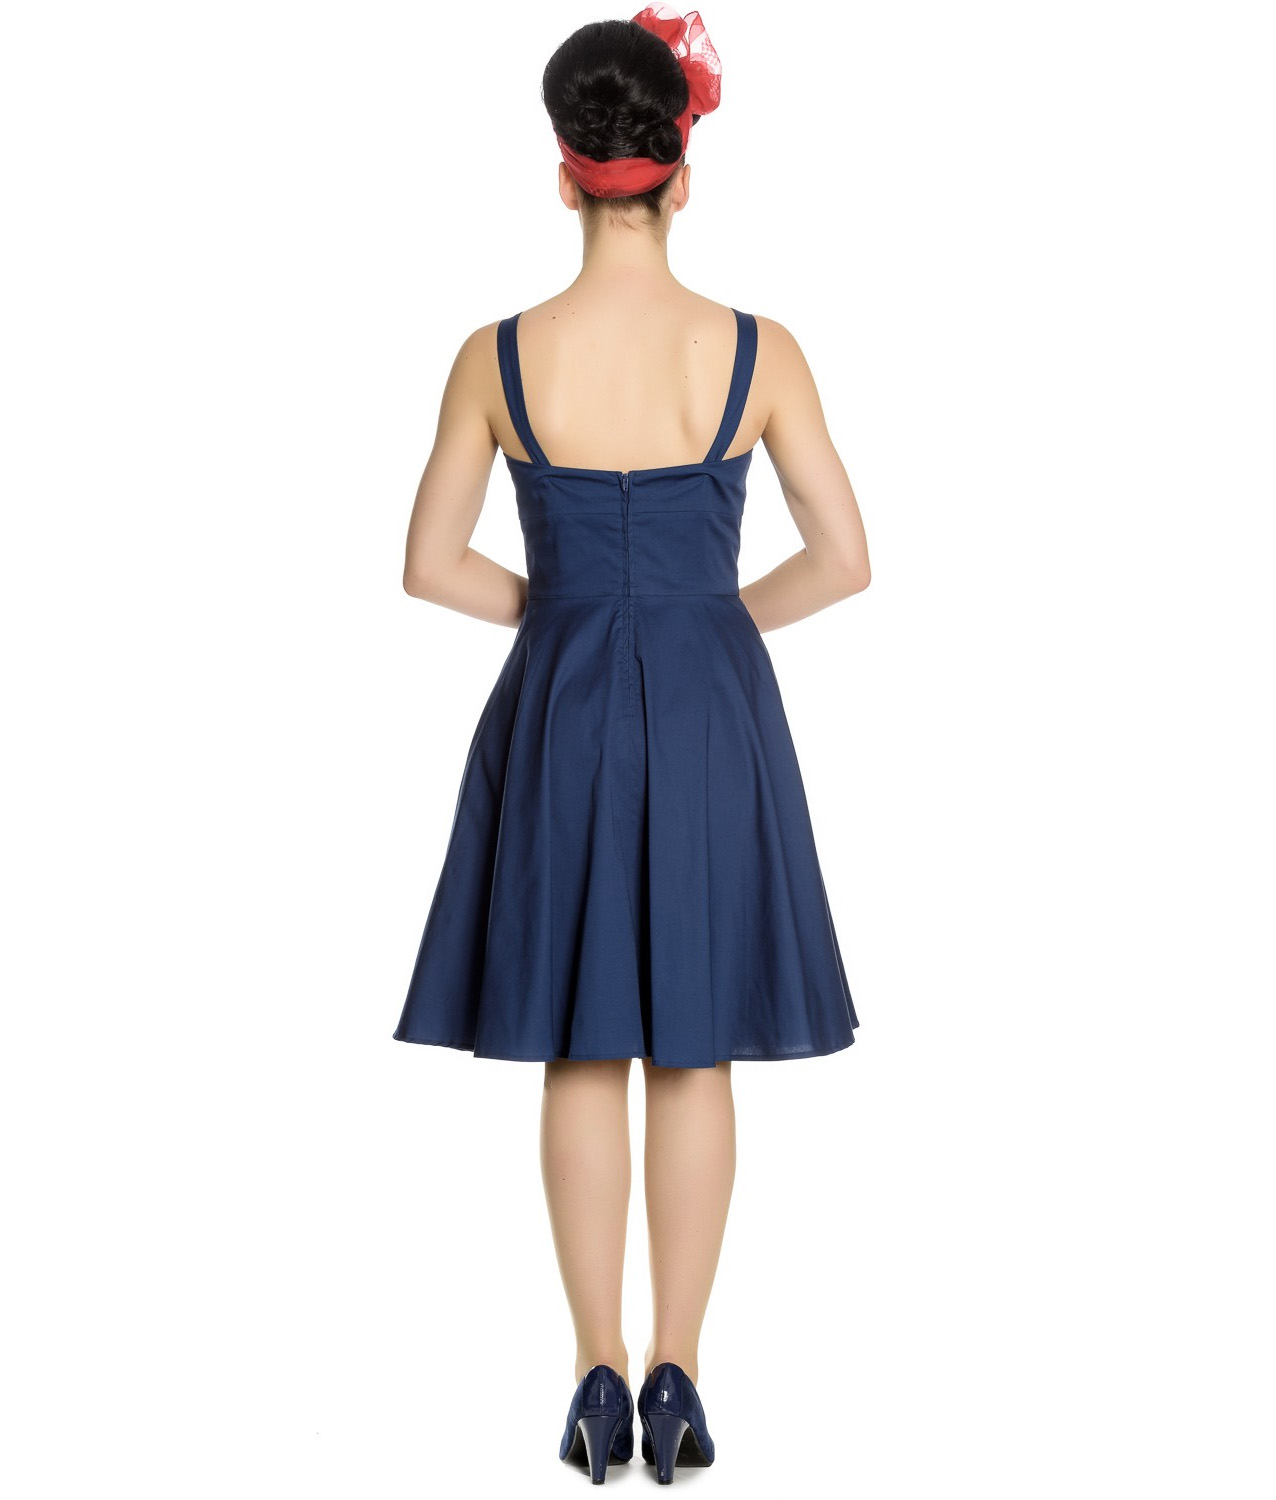 Hell-Bunny-Vintage-50s-Pin-Up-Dress-Navy-Blue-SELA-Nautical-Anchors-All-Sizes thumbnail 21